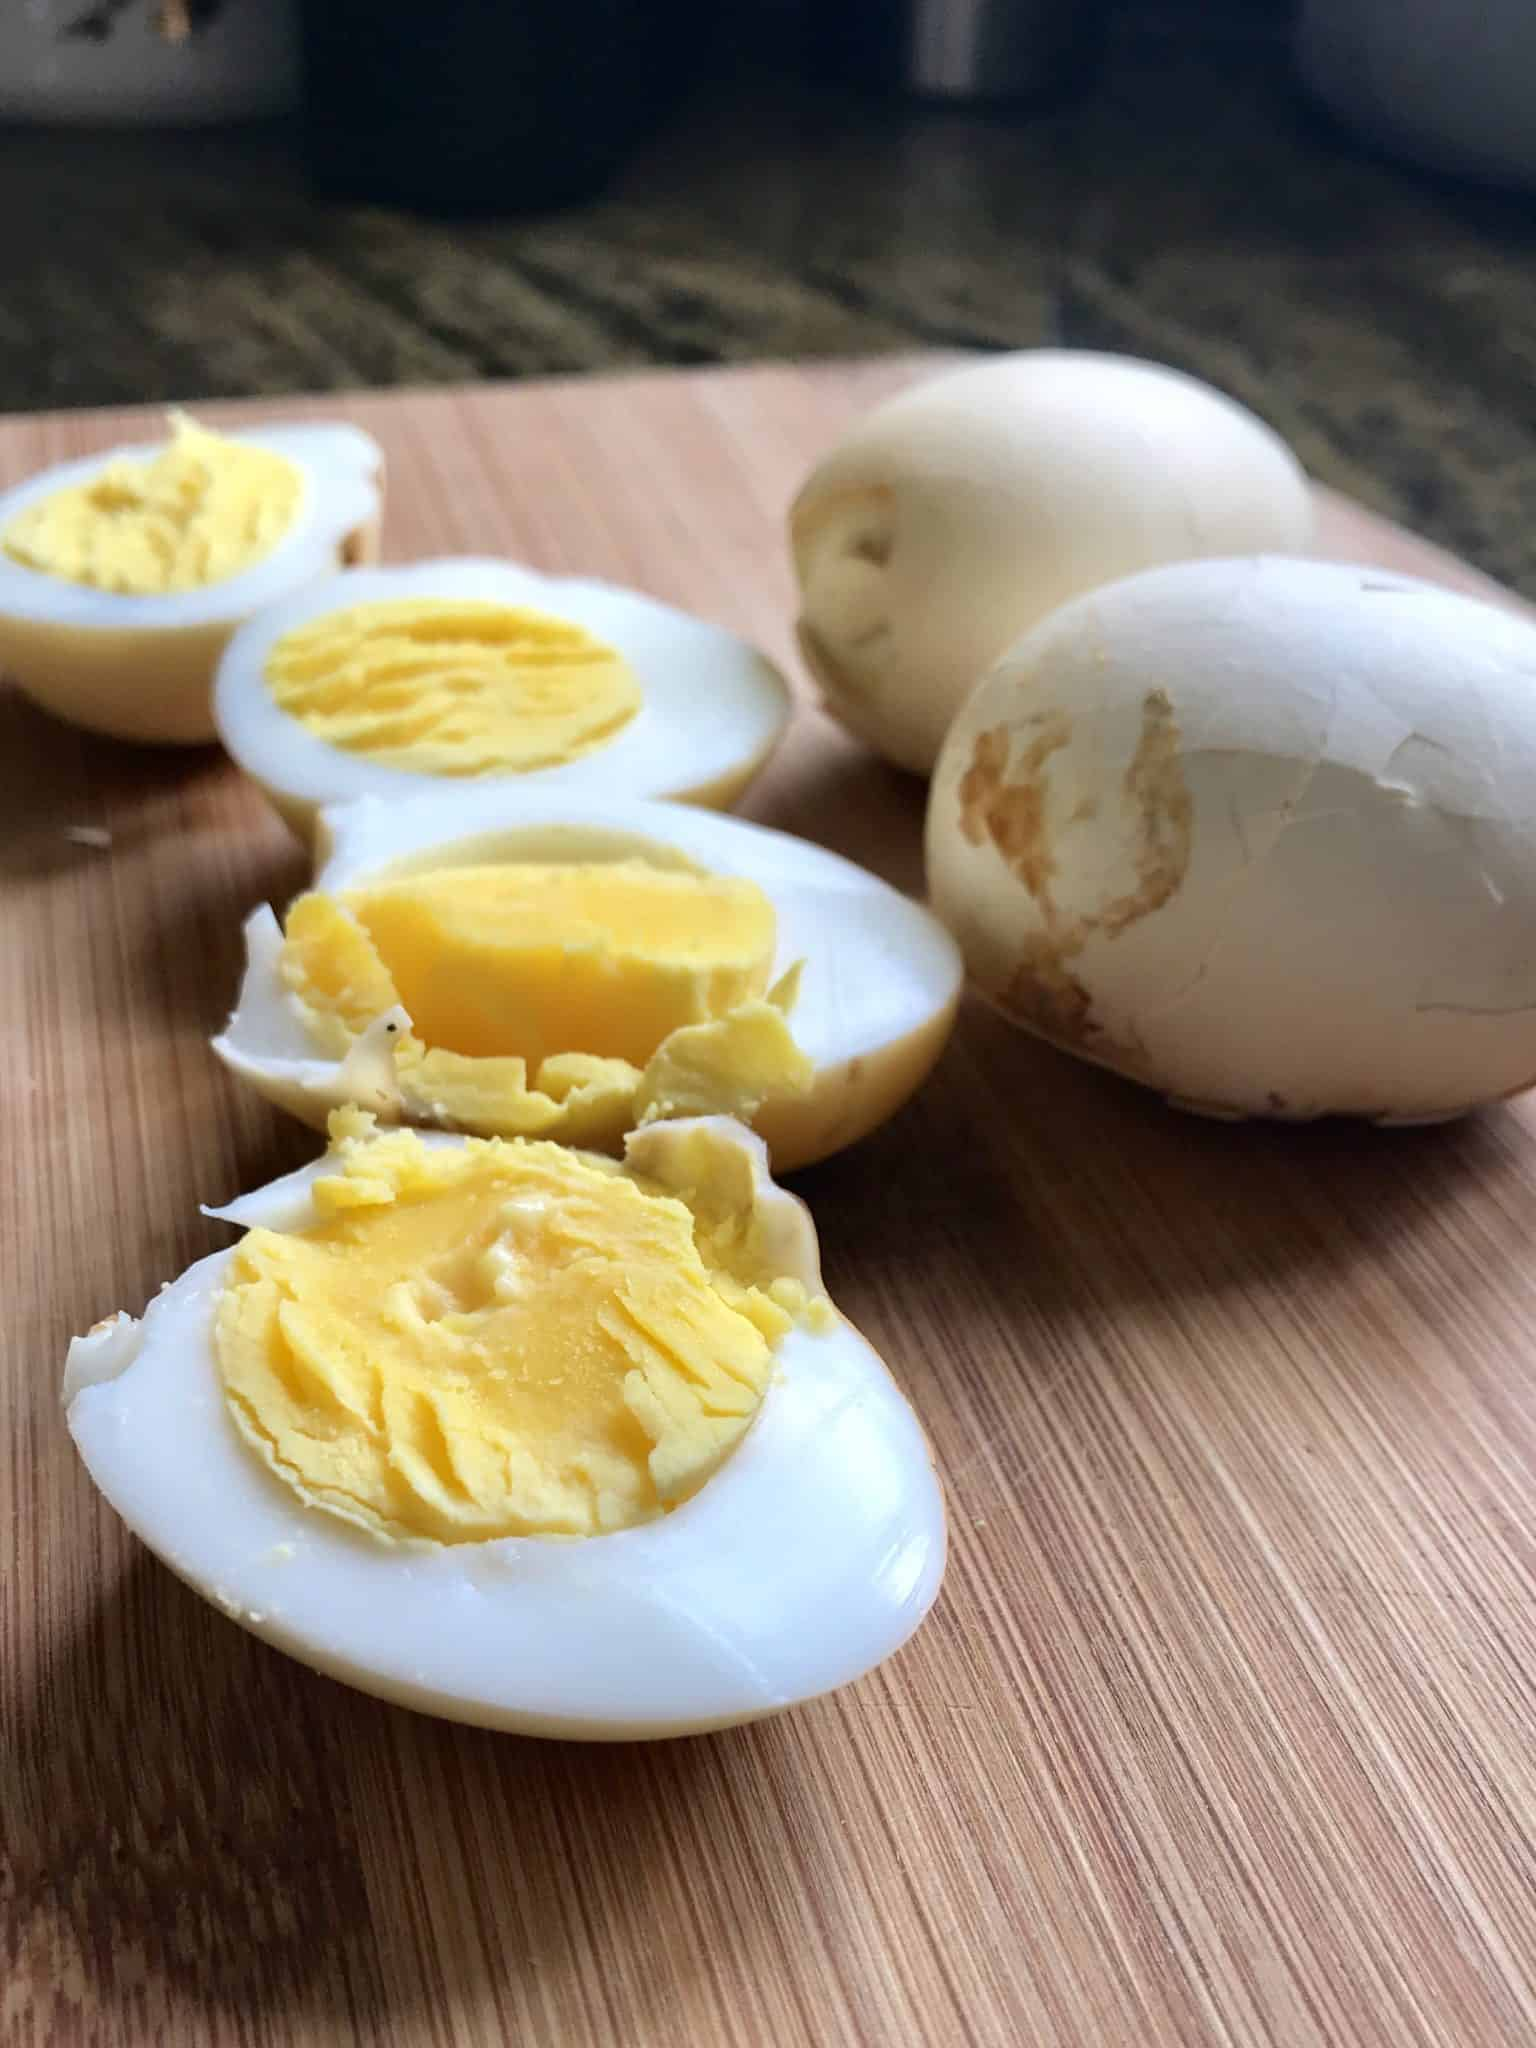 Smoked Eggs sliced in half sitting on wooden cutting board close up view